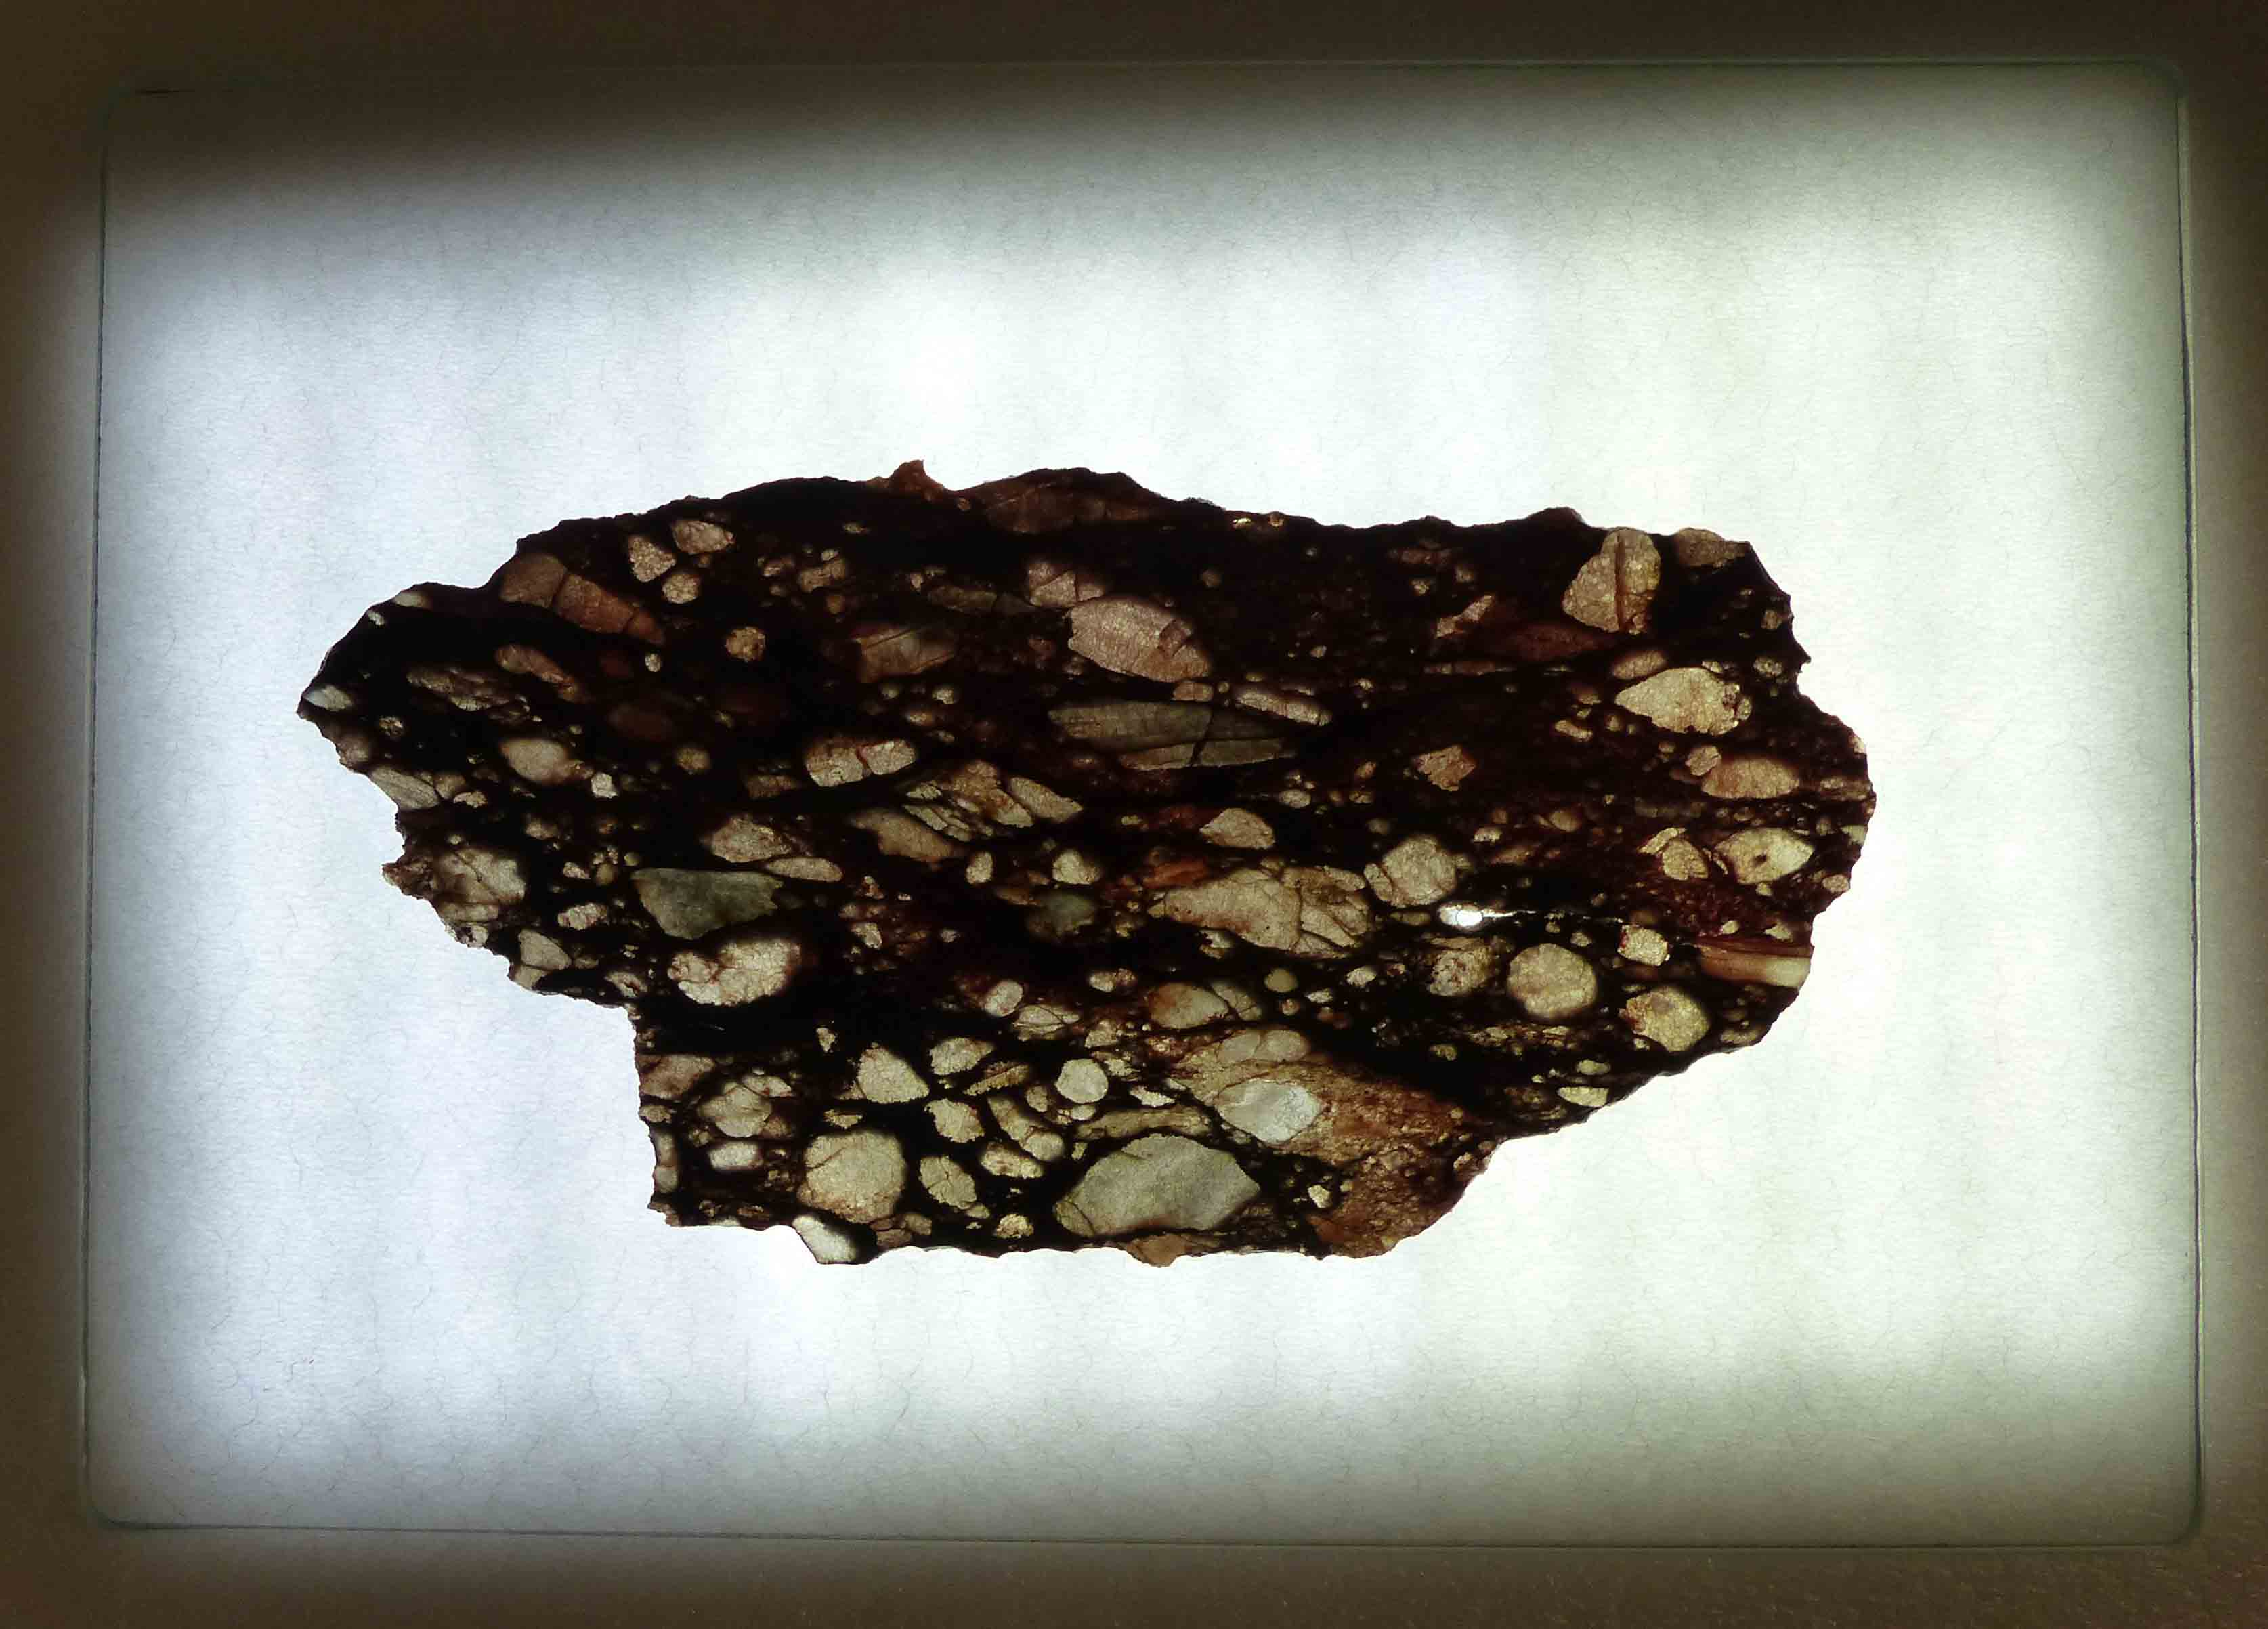 A cross-section of a black and brown rock with jagged edges, with brighter spots lit up by a light table